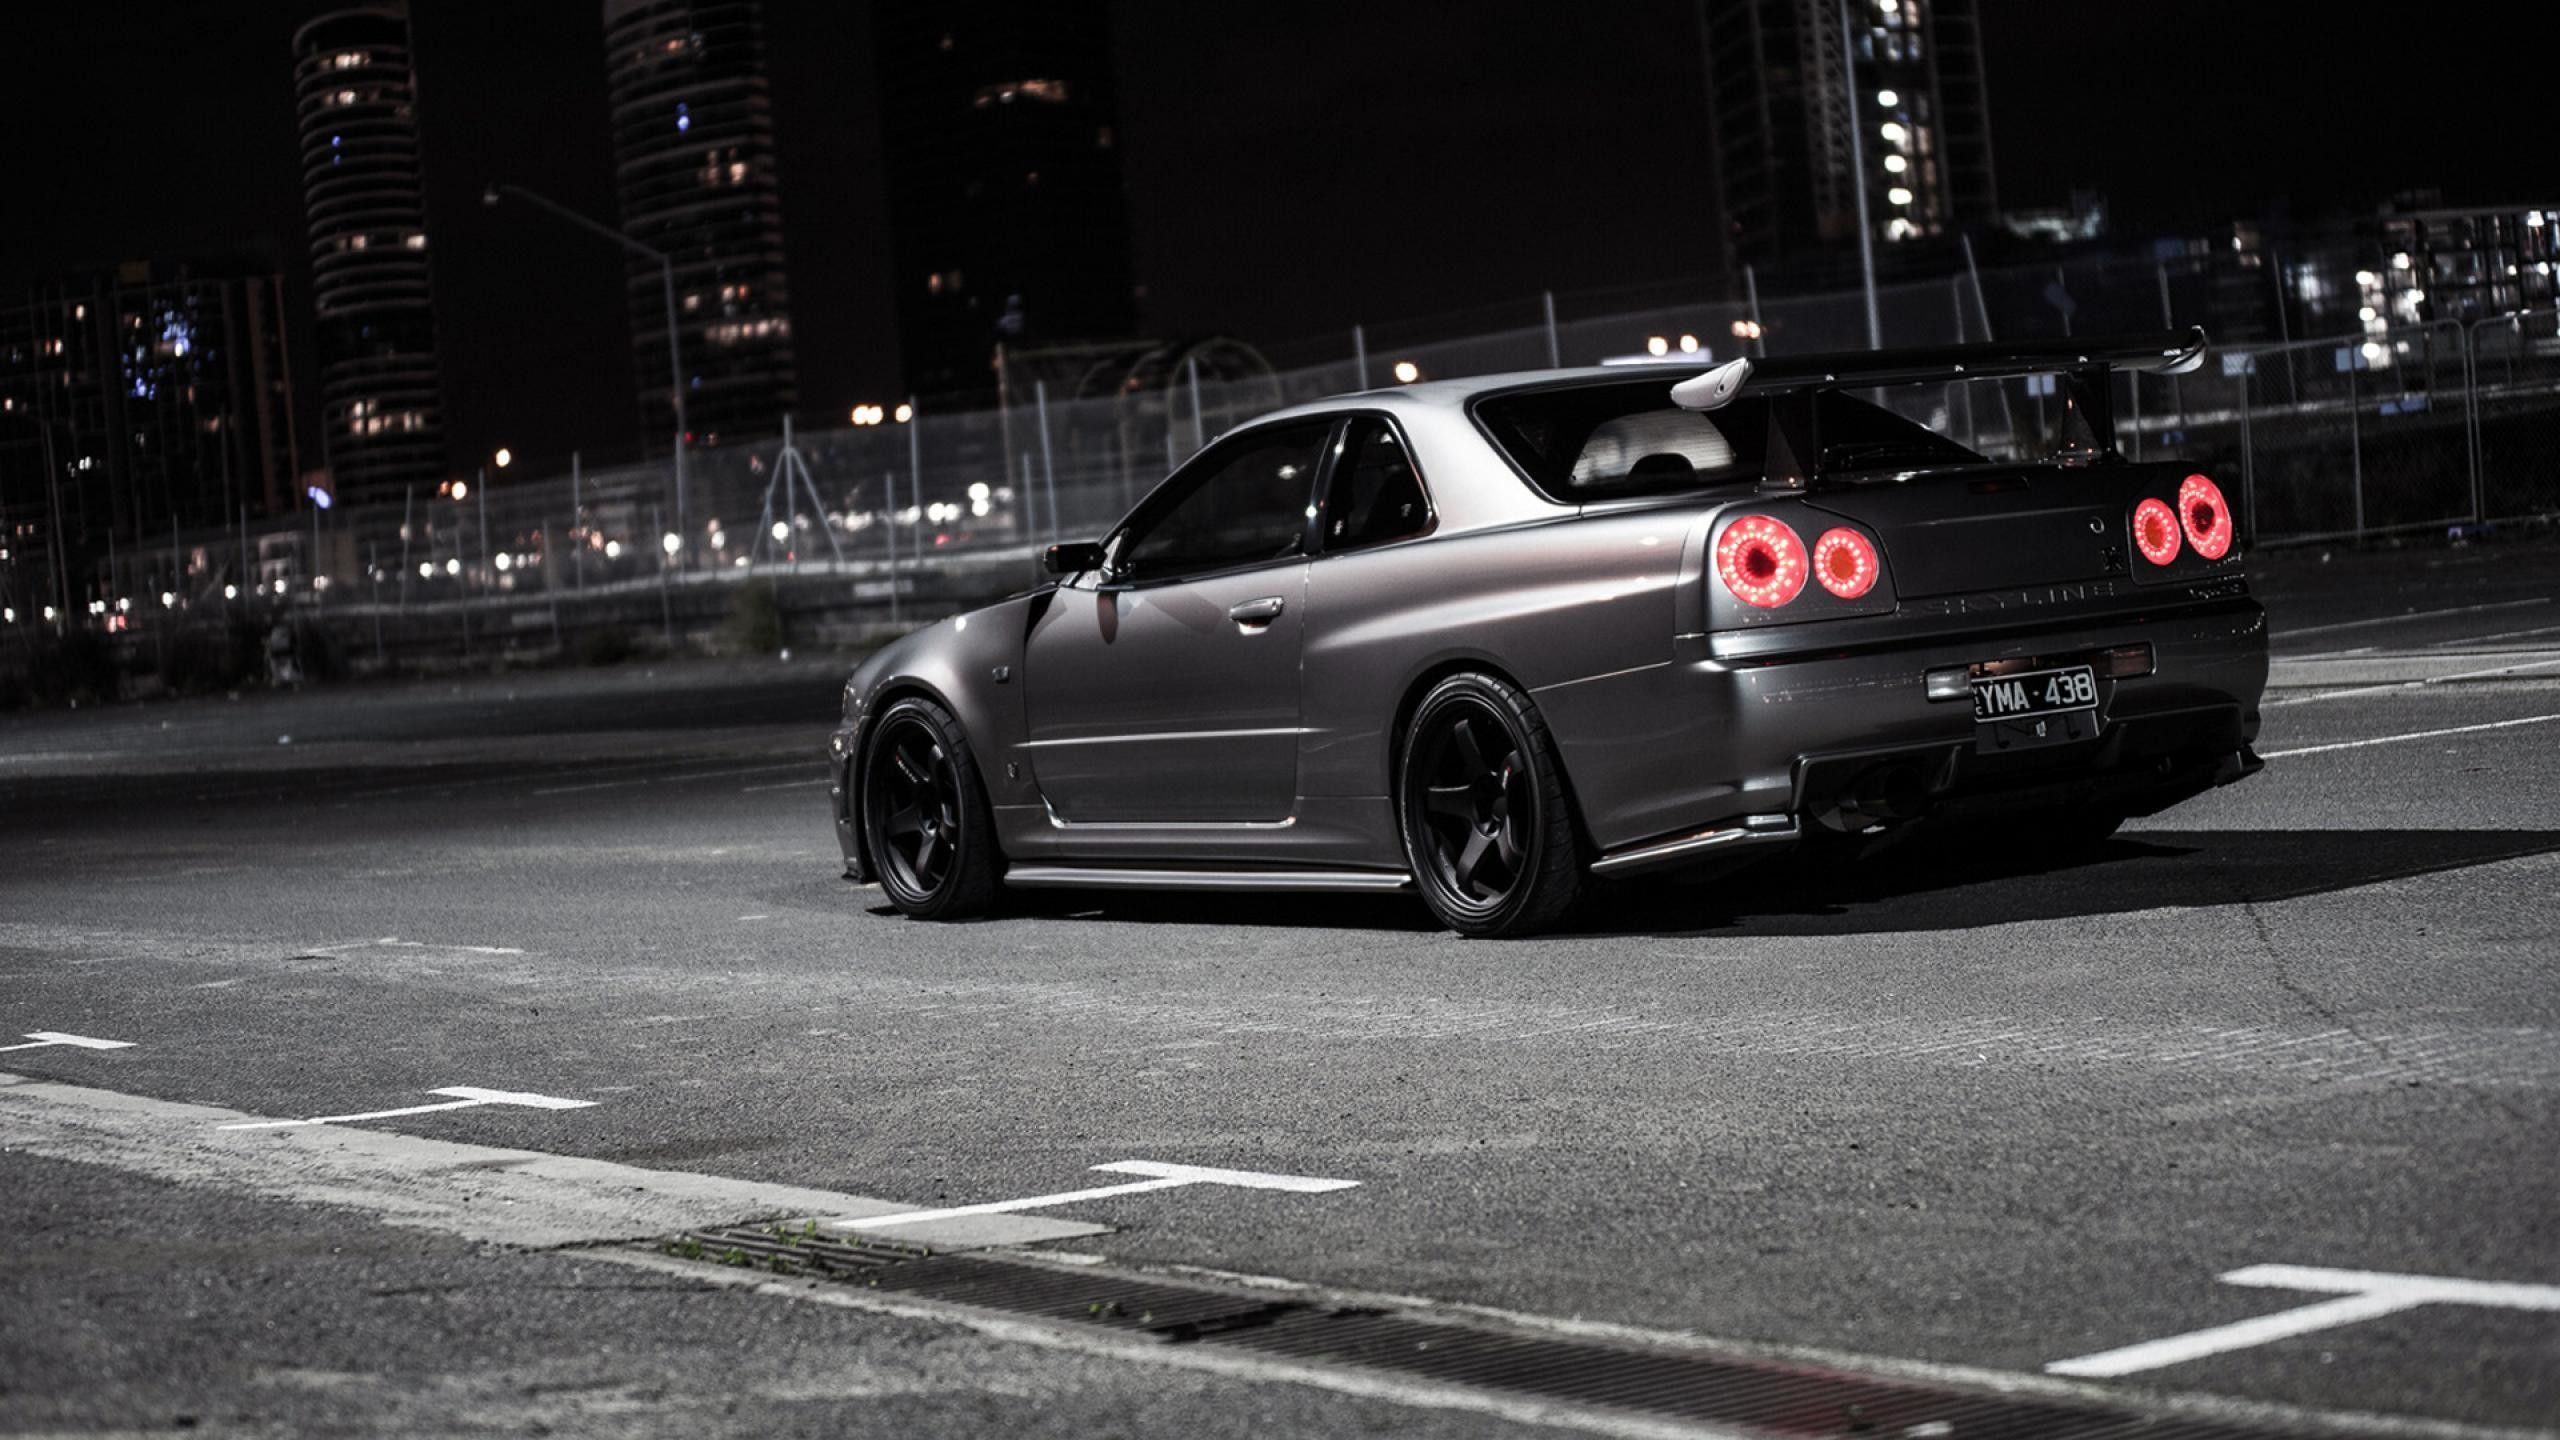 Like Hd Gtr Wallpaper Nissan Skyline R32 Wallpaper Nissan Skyline .